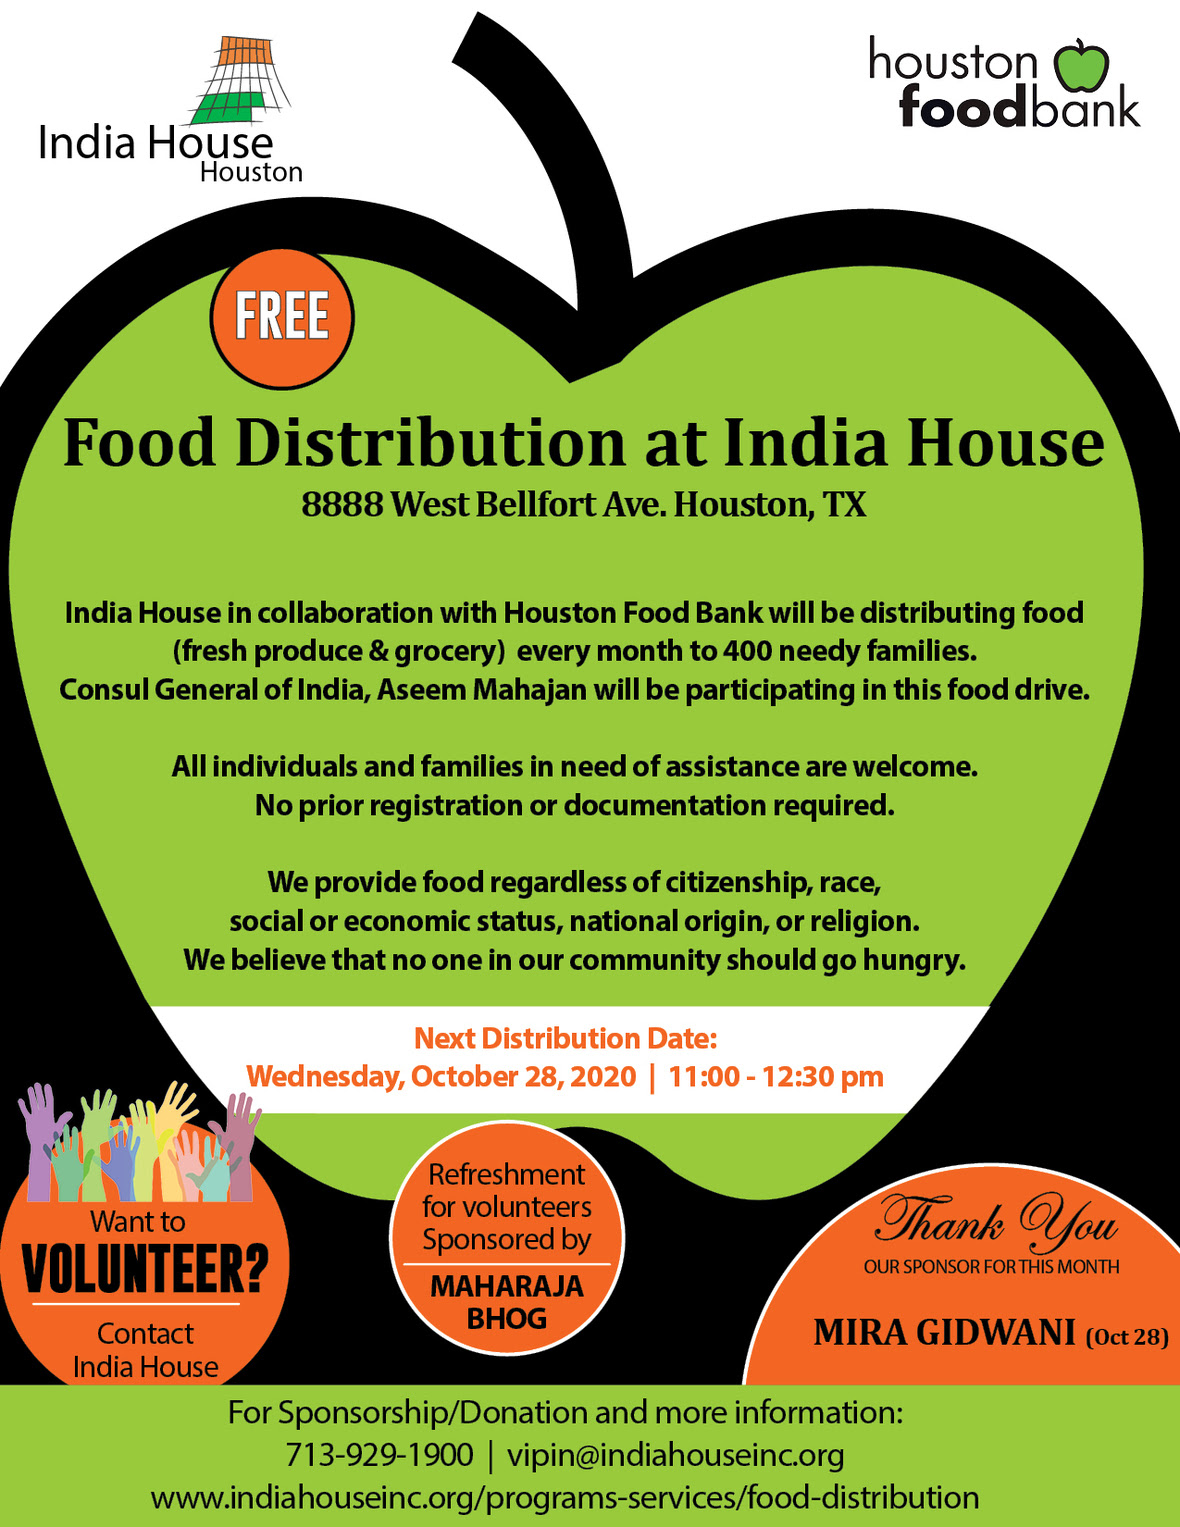 Free Food Distribution at India House, Wednesday, October 28th